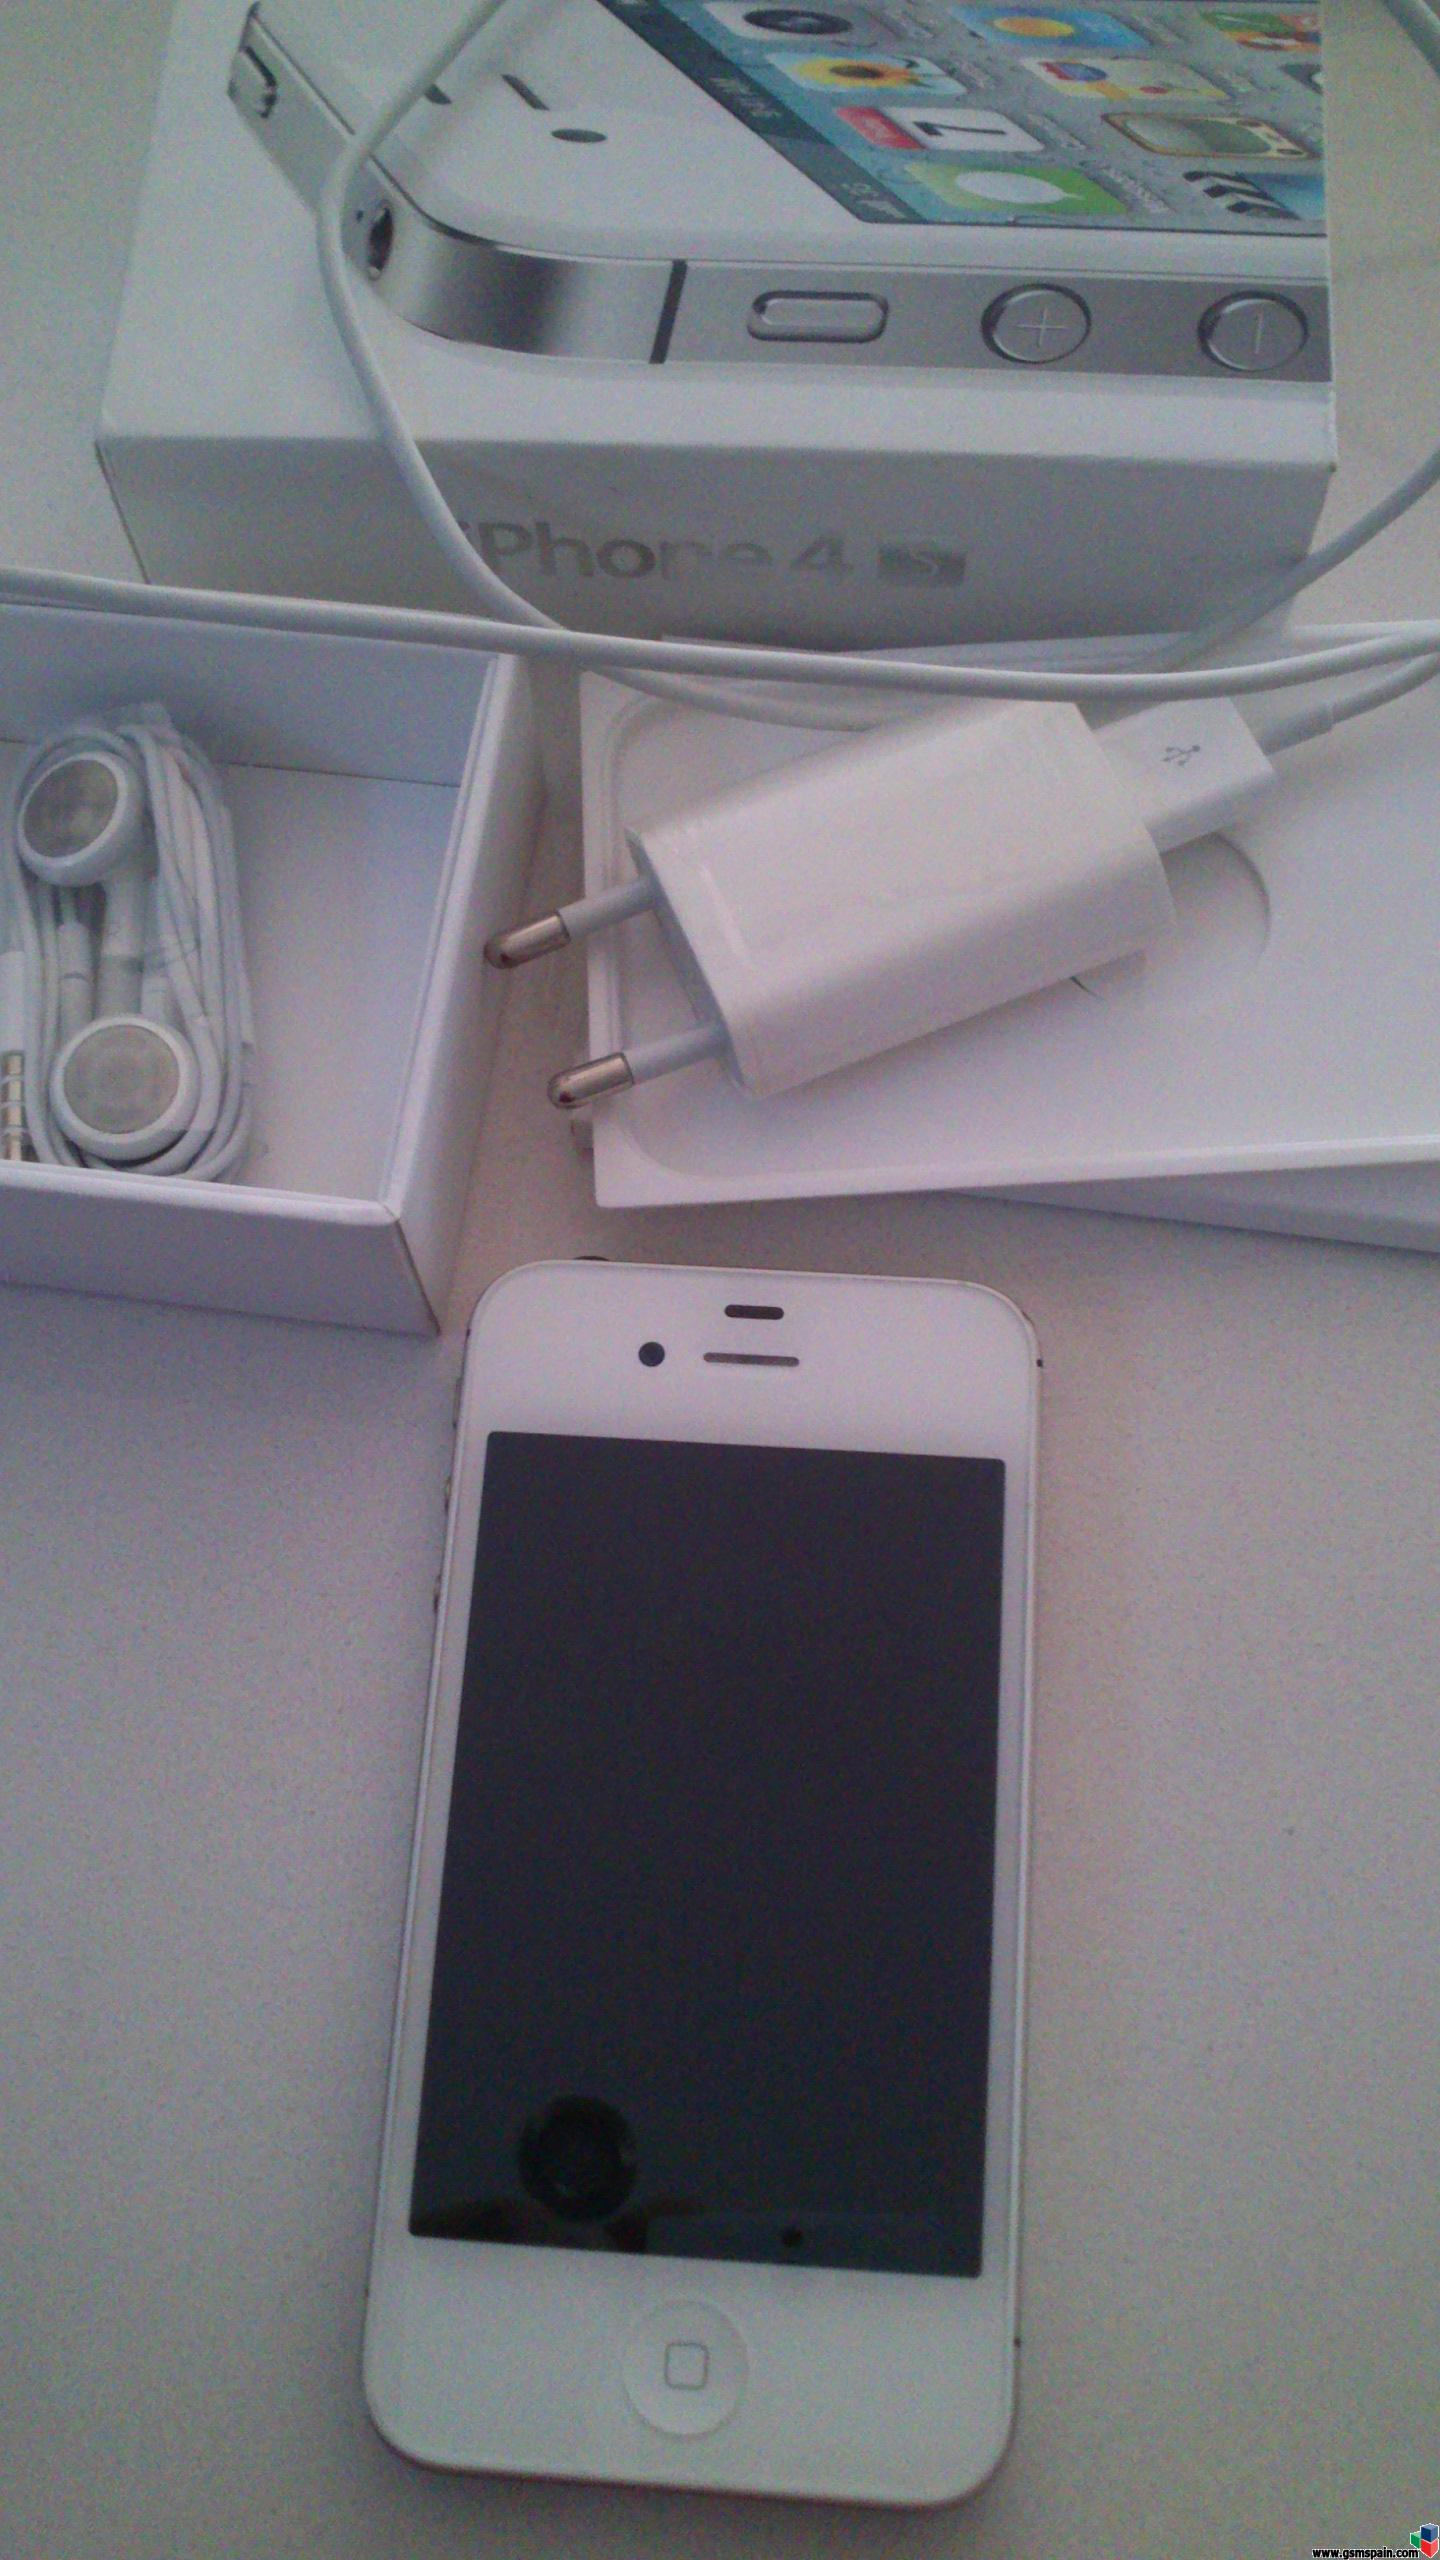 Precio Iphone 4s Libre Iphone 4s 16gb Blanco Libre 360 Fans De Apple